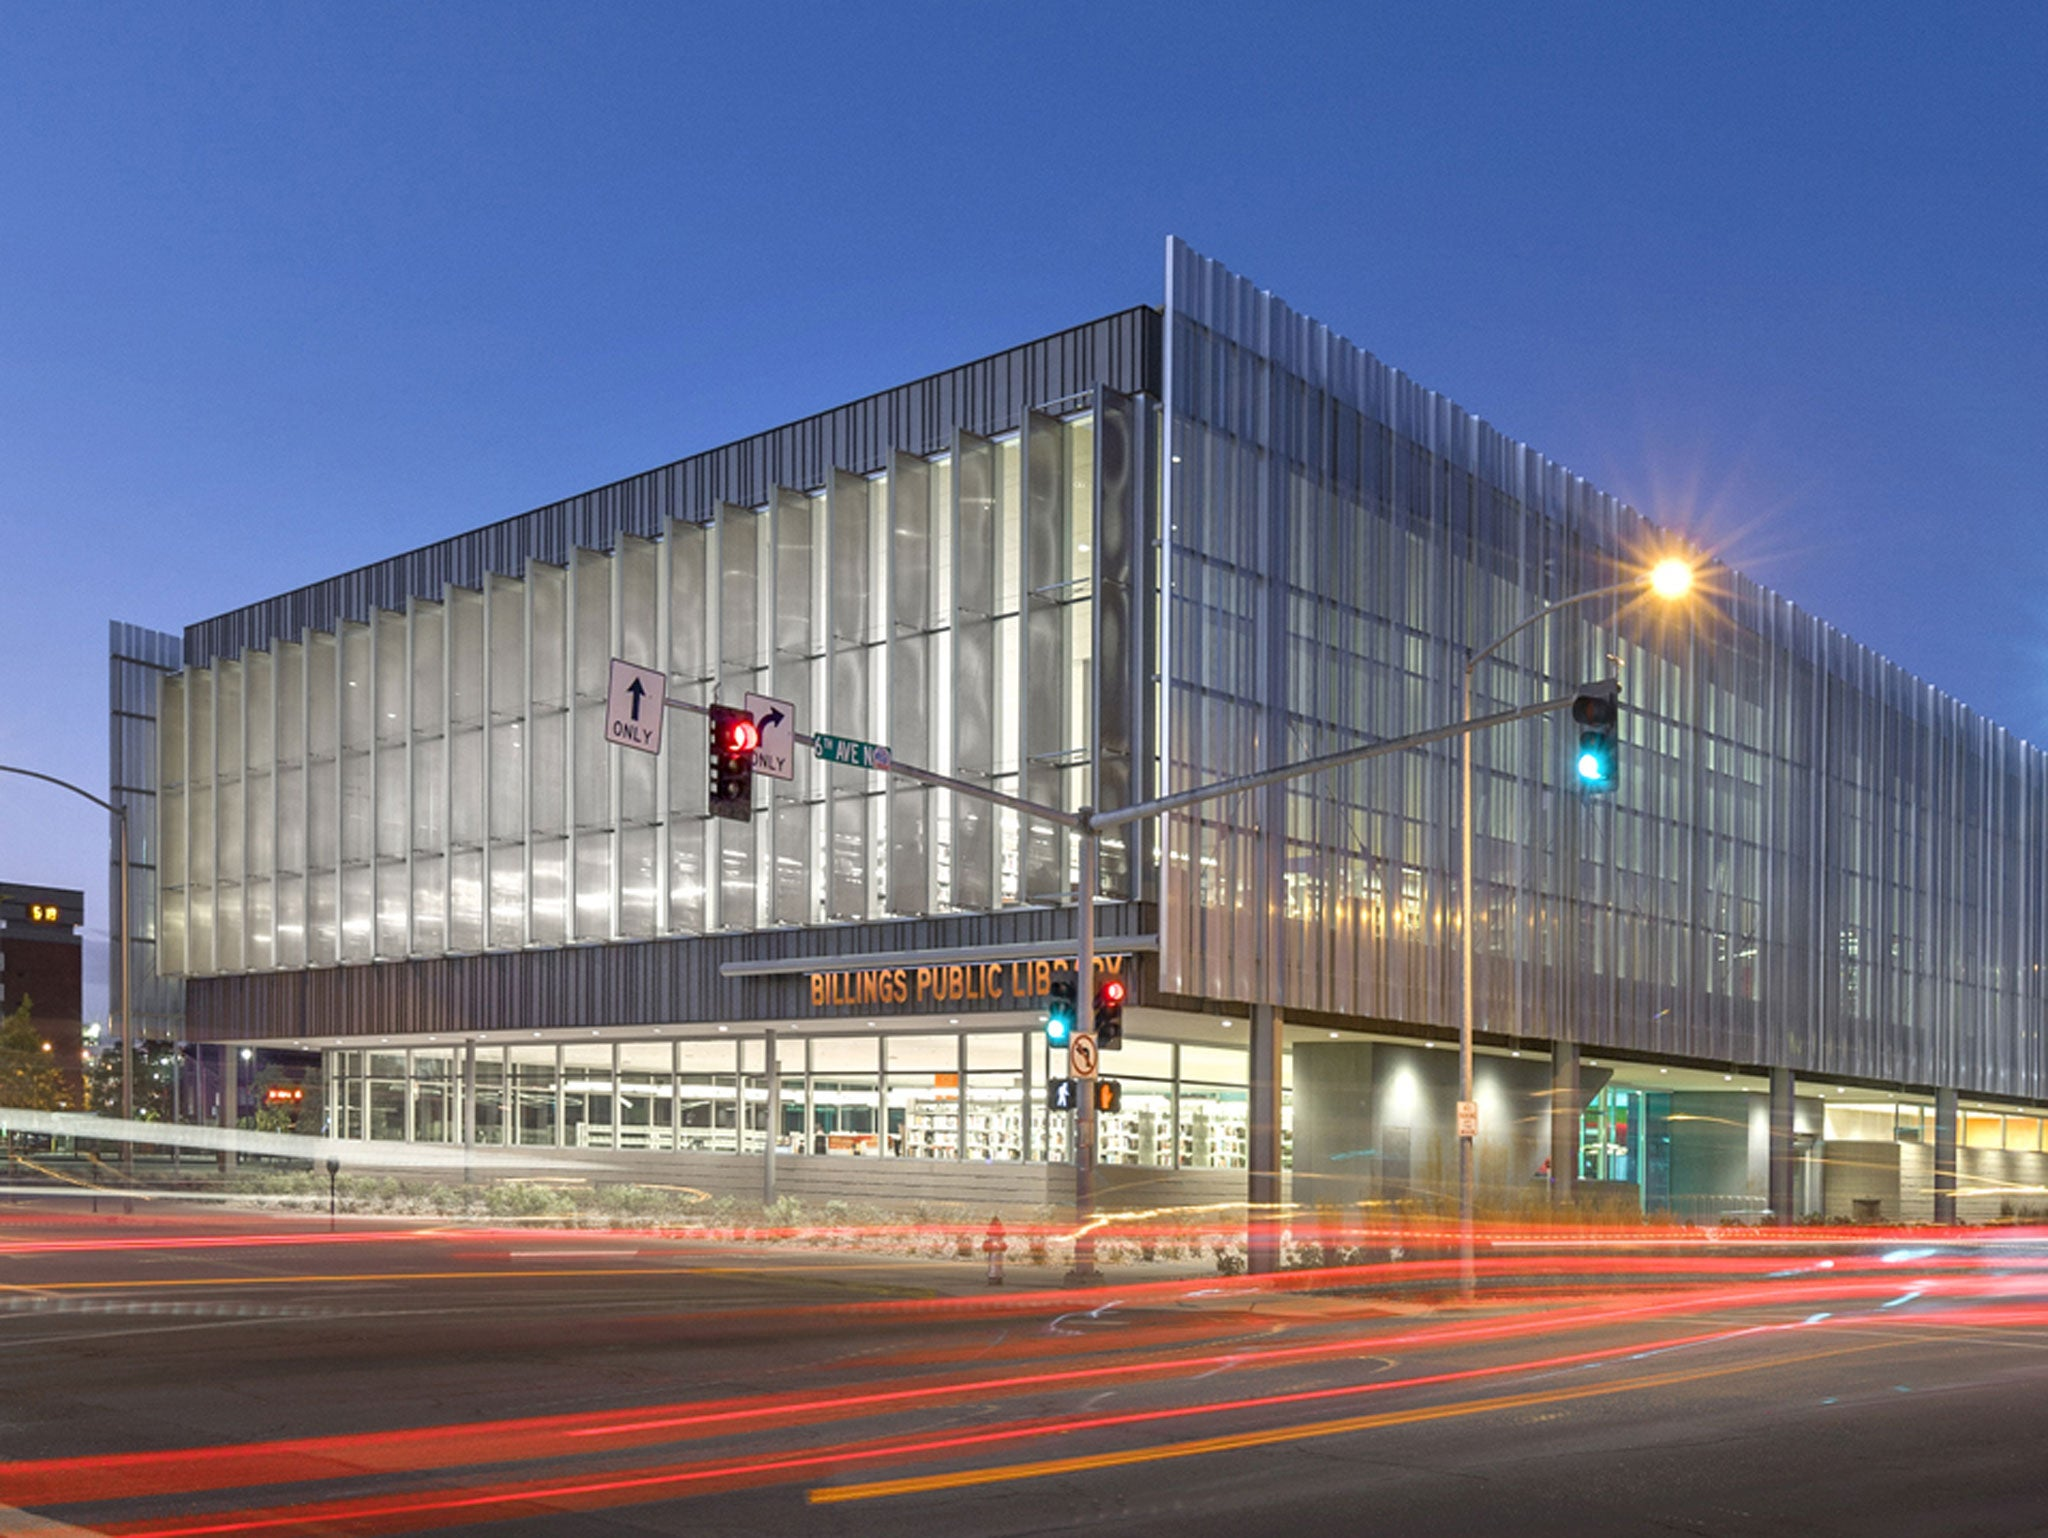 American Institute Of Architects 2016 Library Building Awards   In Pictures